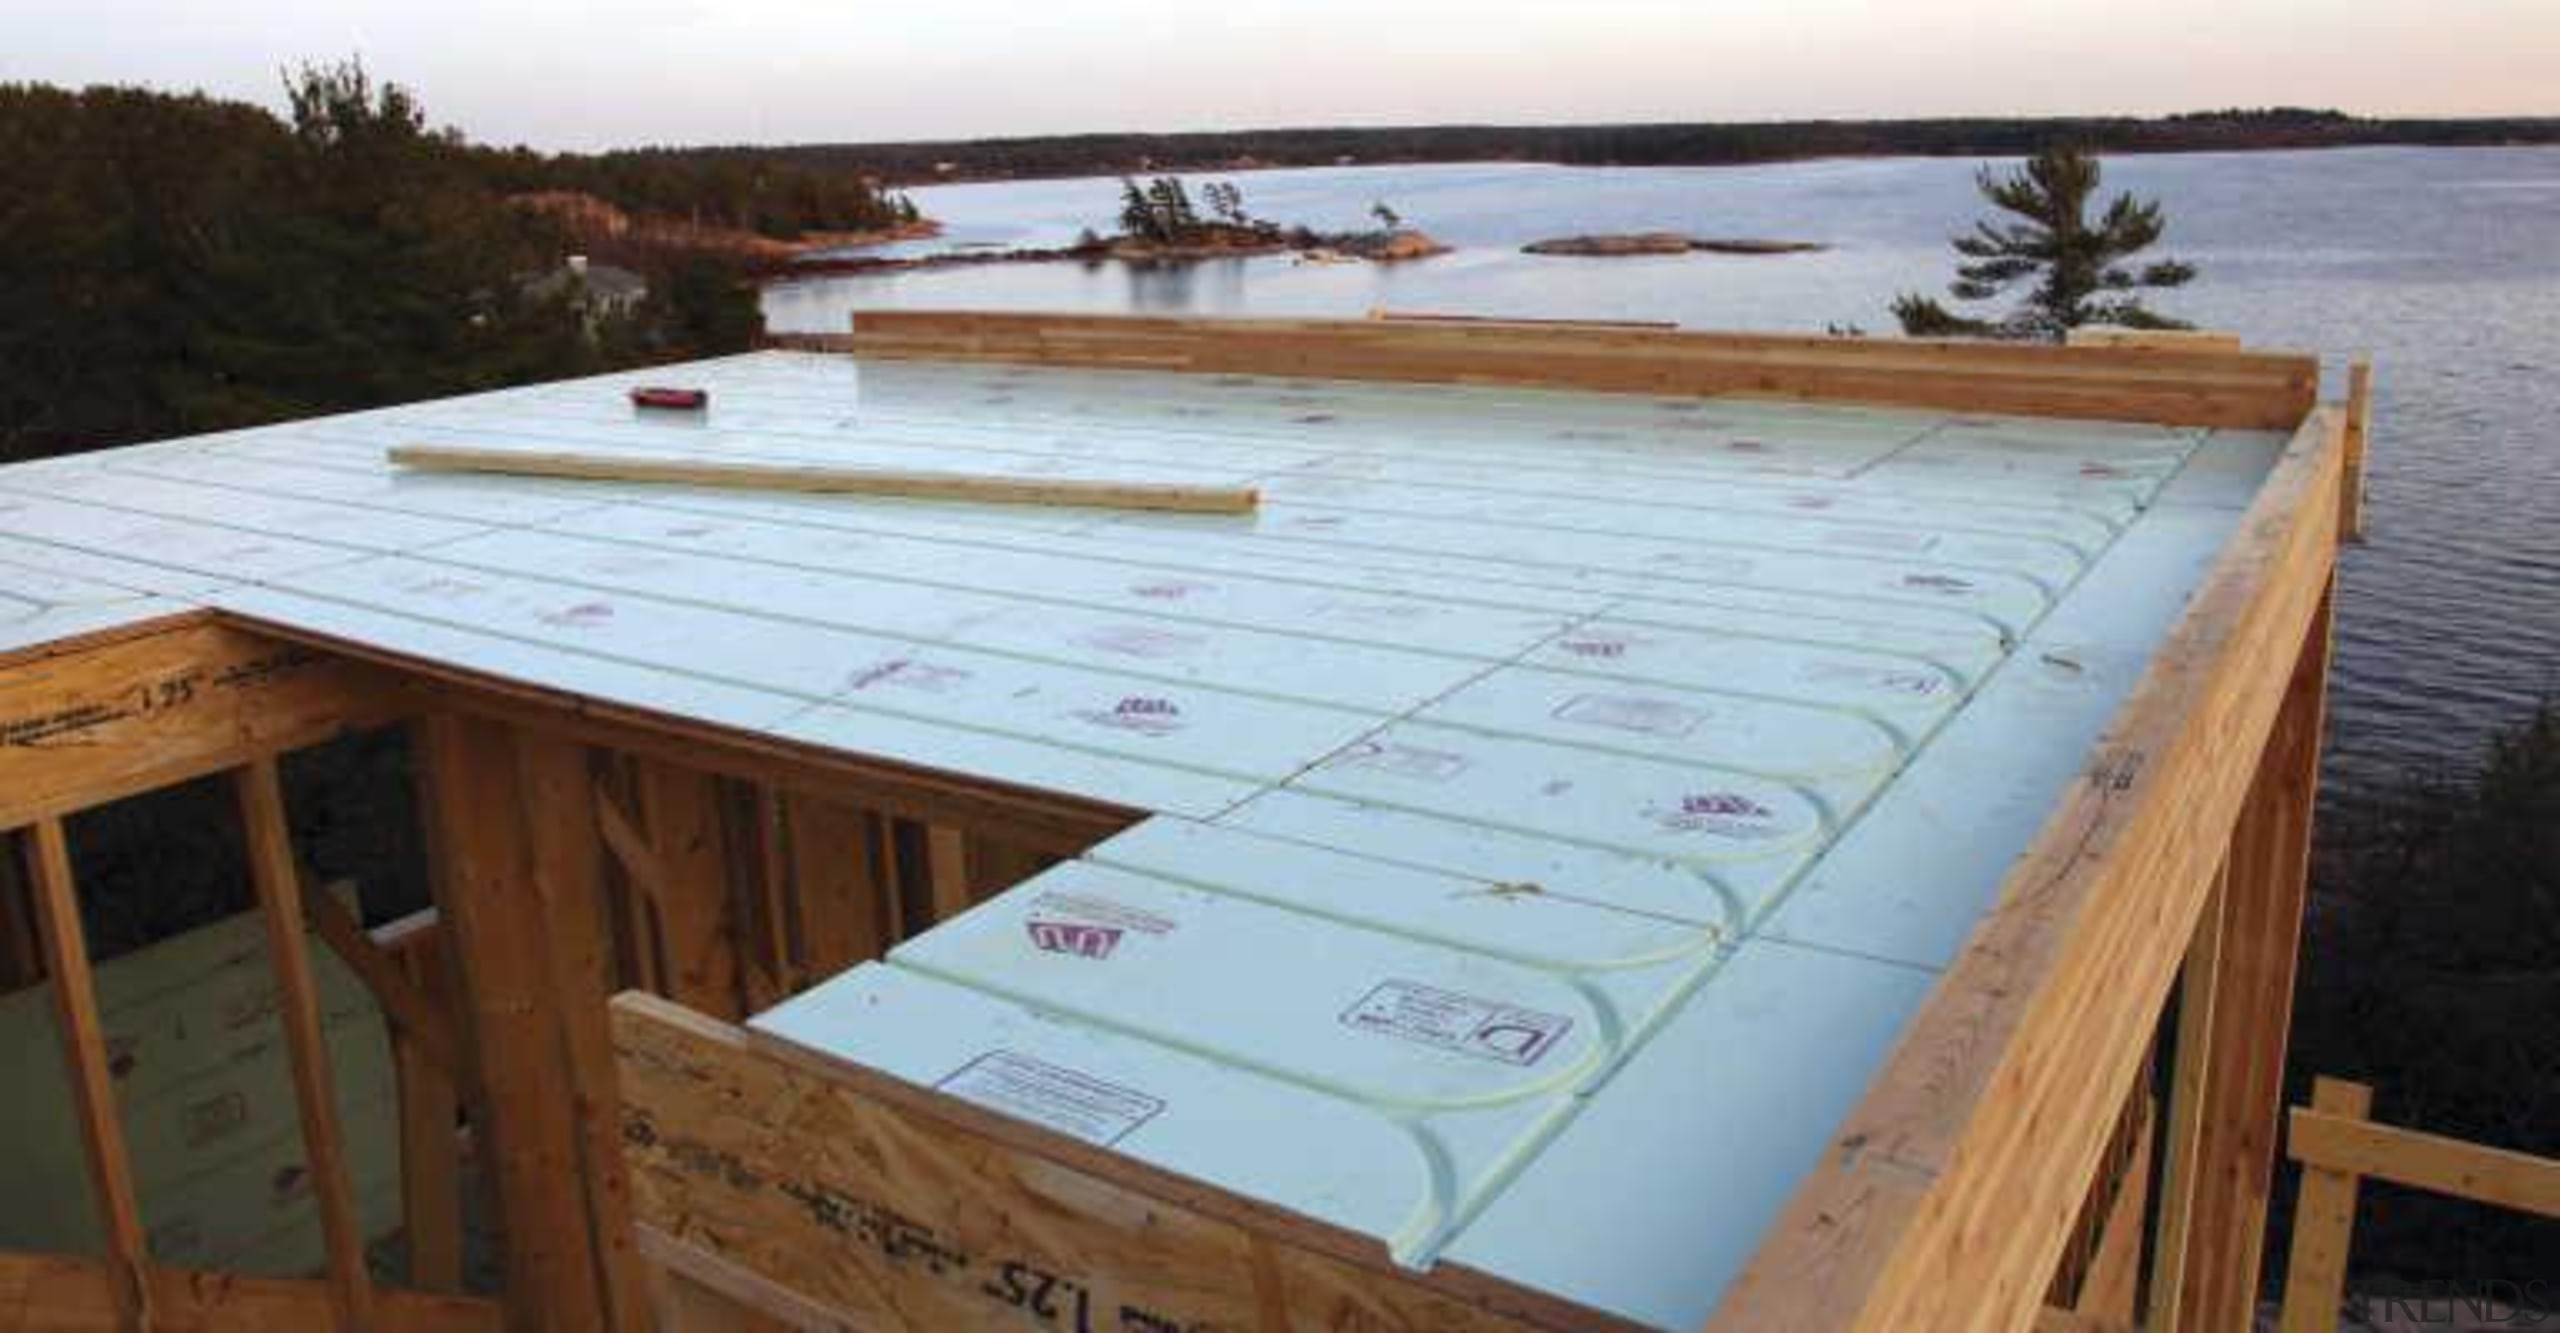 Warmboard provides and eco friendly, quiet and efficient daylighting, floor, roof, wood, wood stain, gray, brown